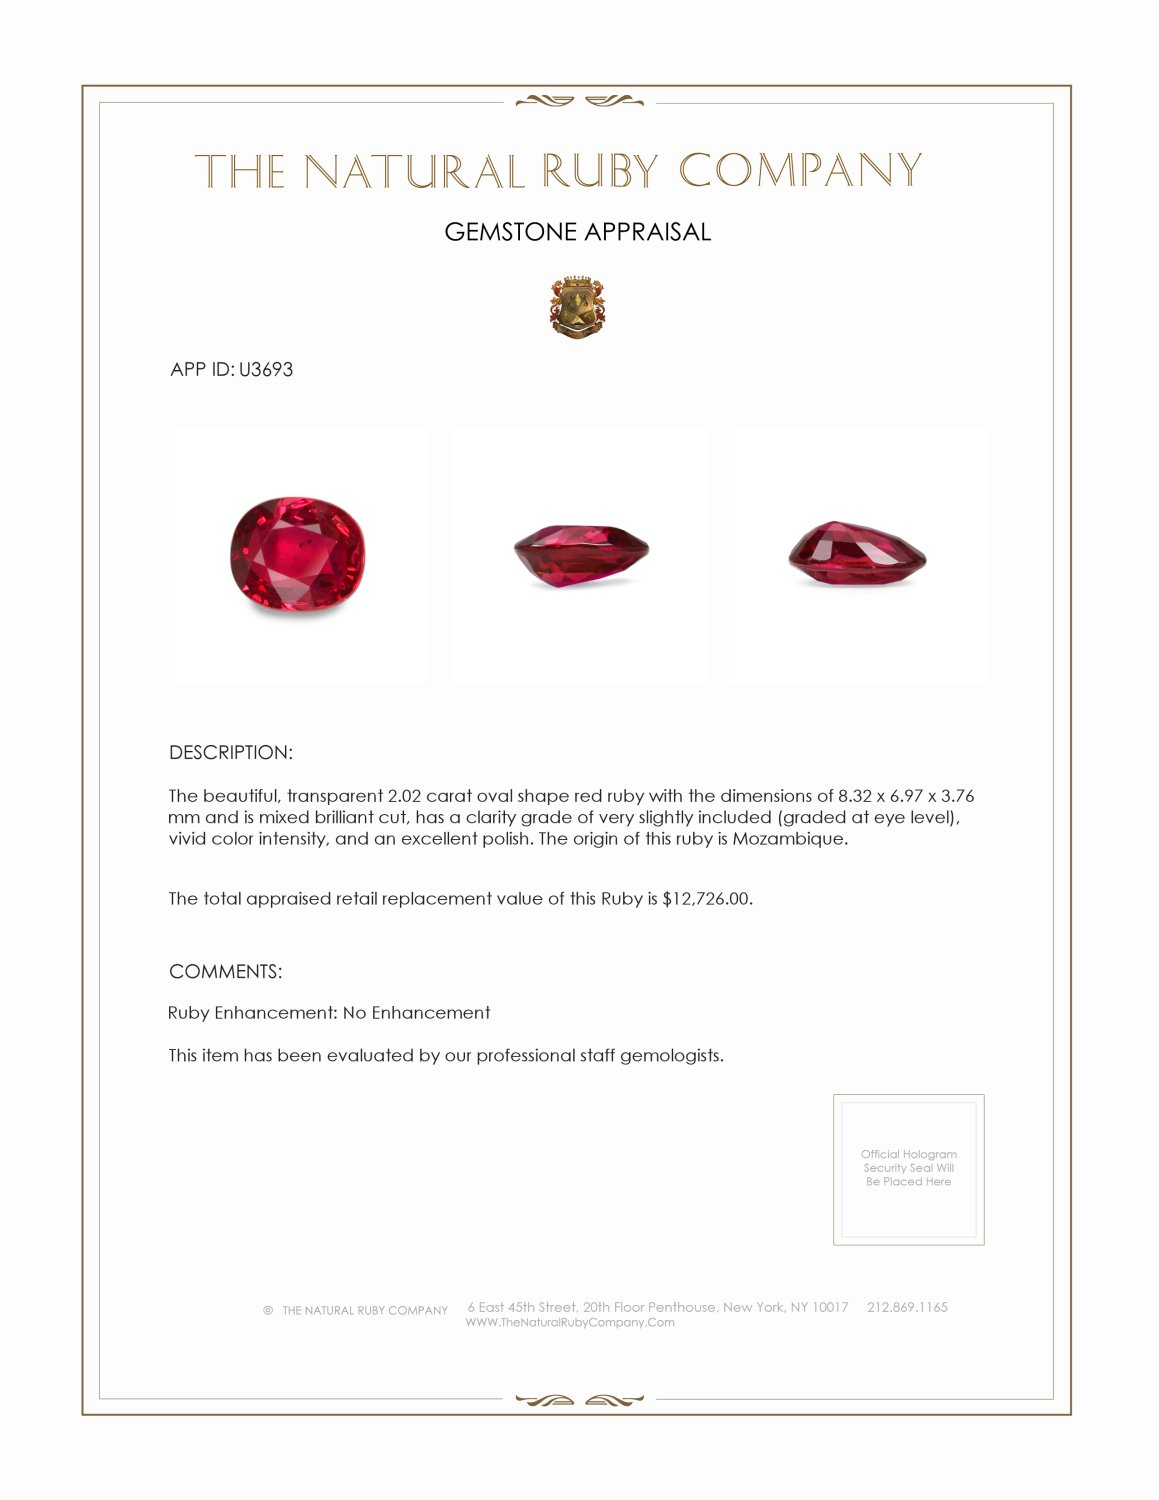 Natural Untreated Ruby U3693 Certification 4